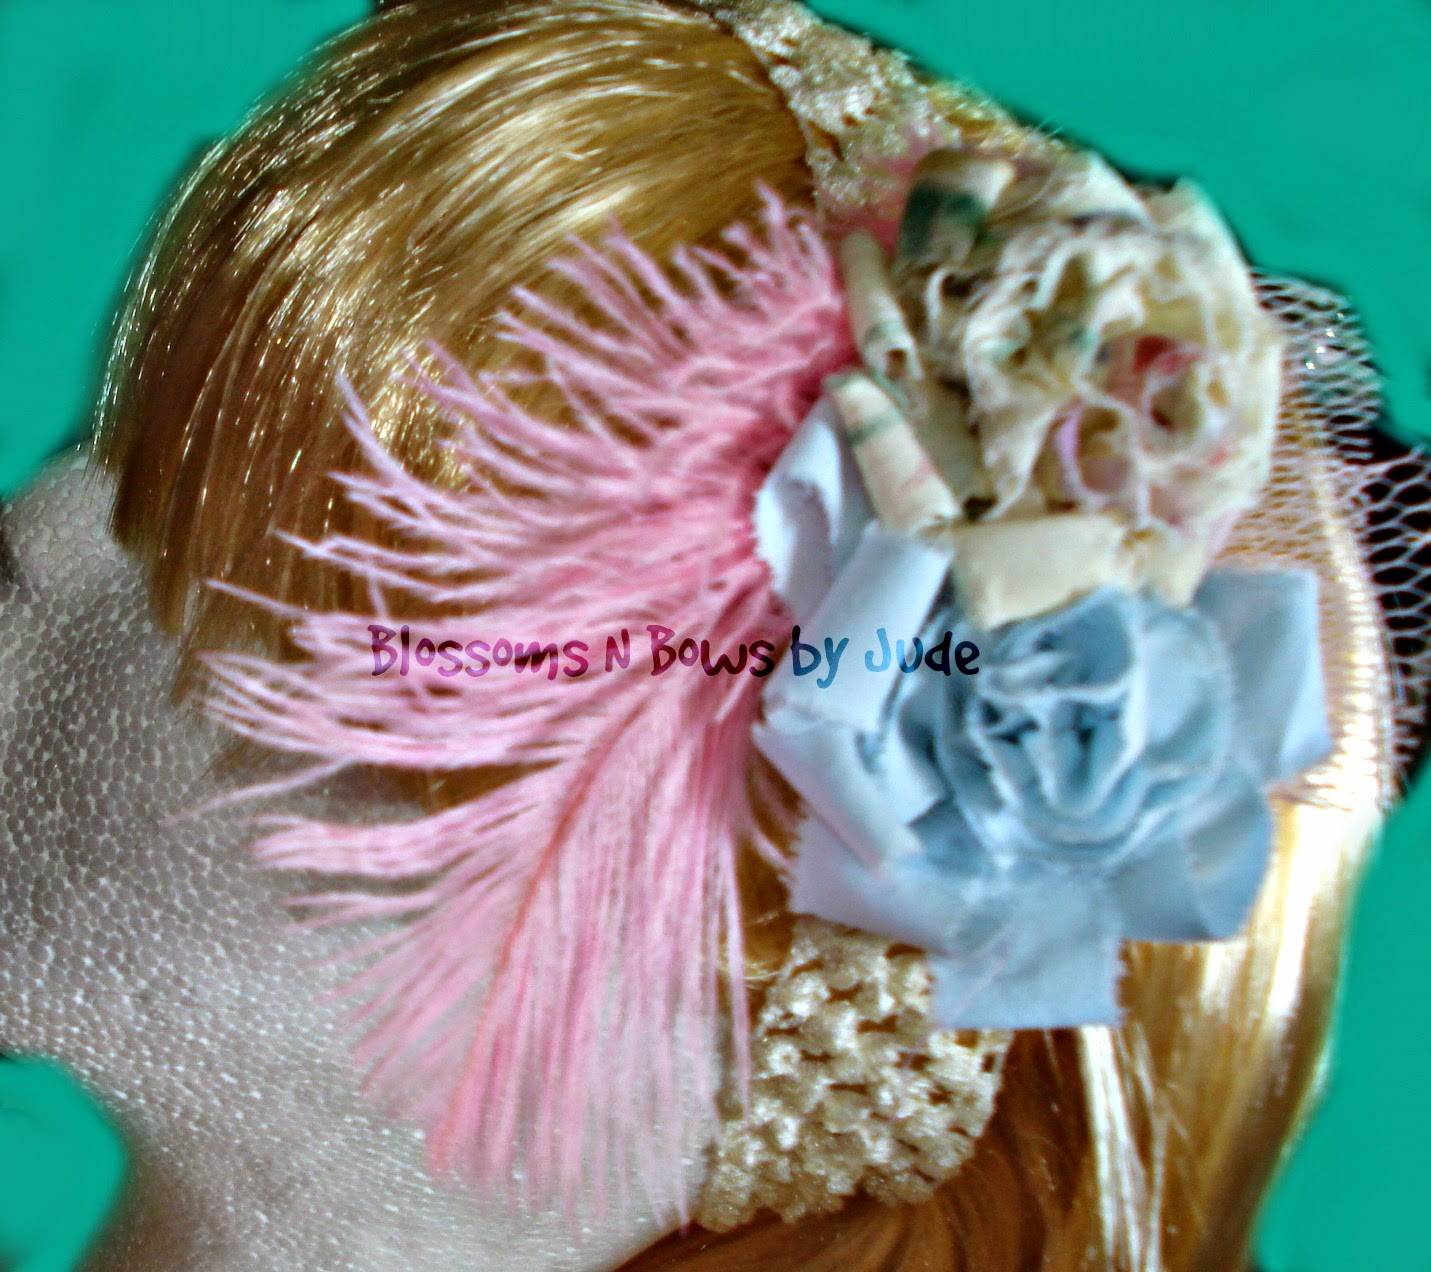 http://www.ebay.com/itm/Easter-Headband-Shabby-Chic-Flapper-Newborn-to-Teen-FREE-SHIPPING-/151274503943?pt=US_Girls_Accessories&hash=item2338a9bf07